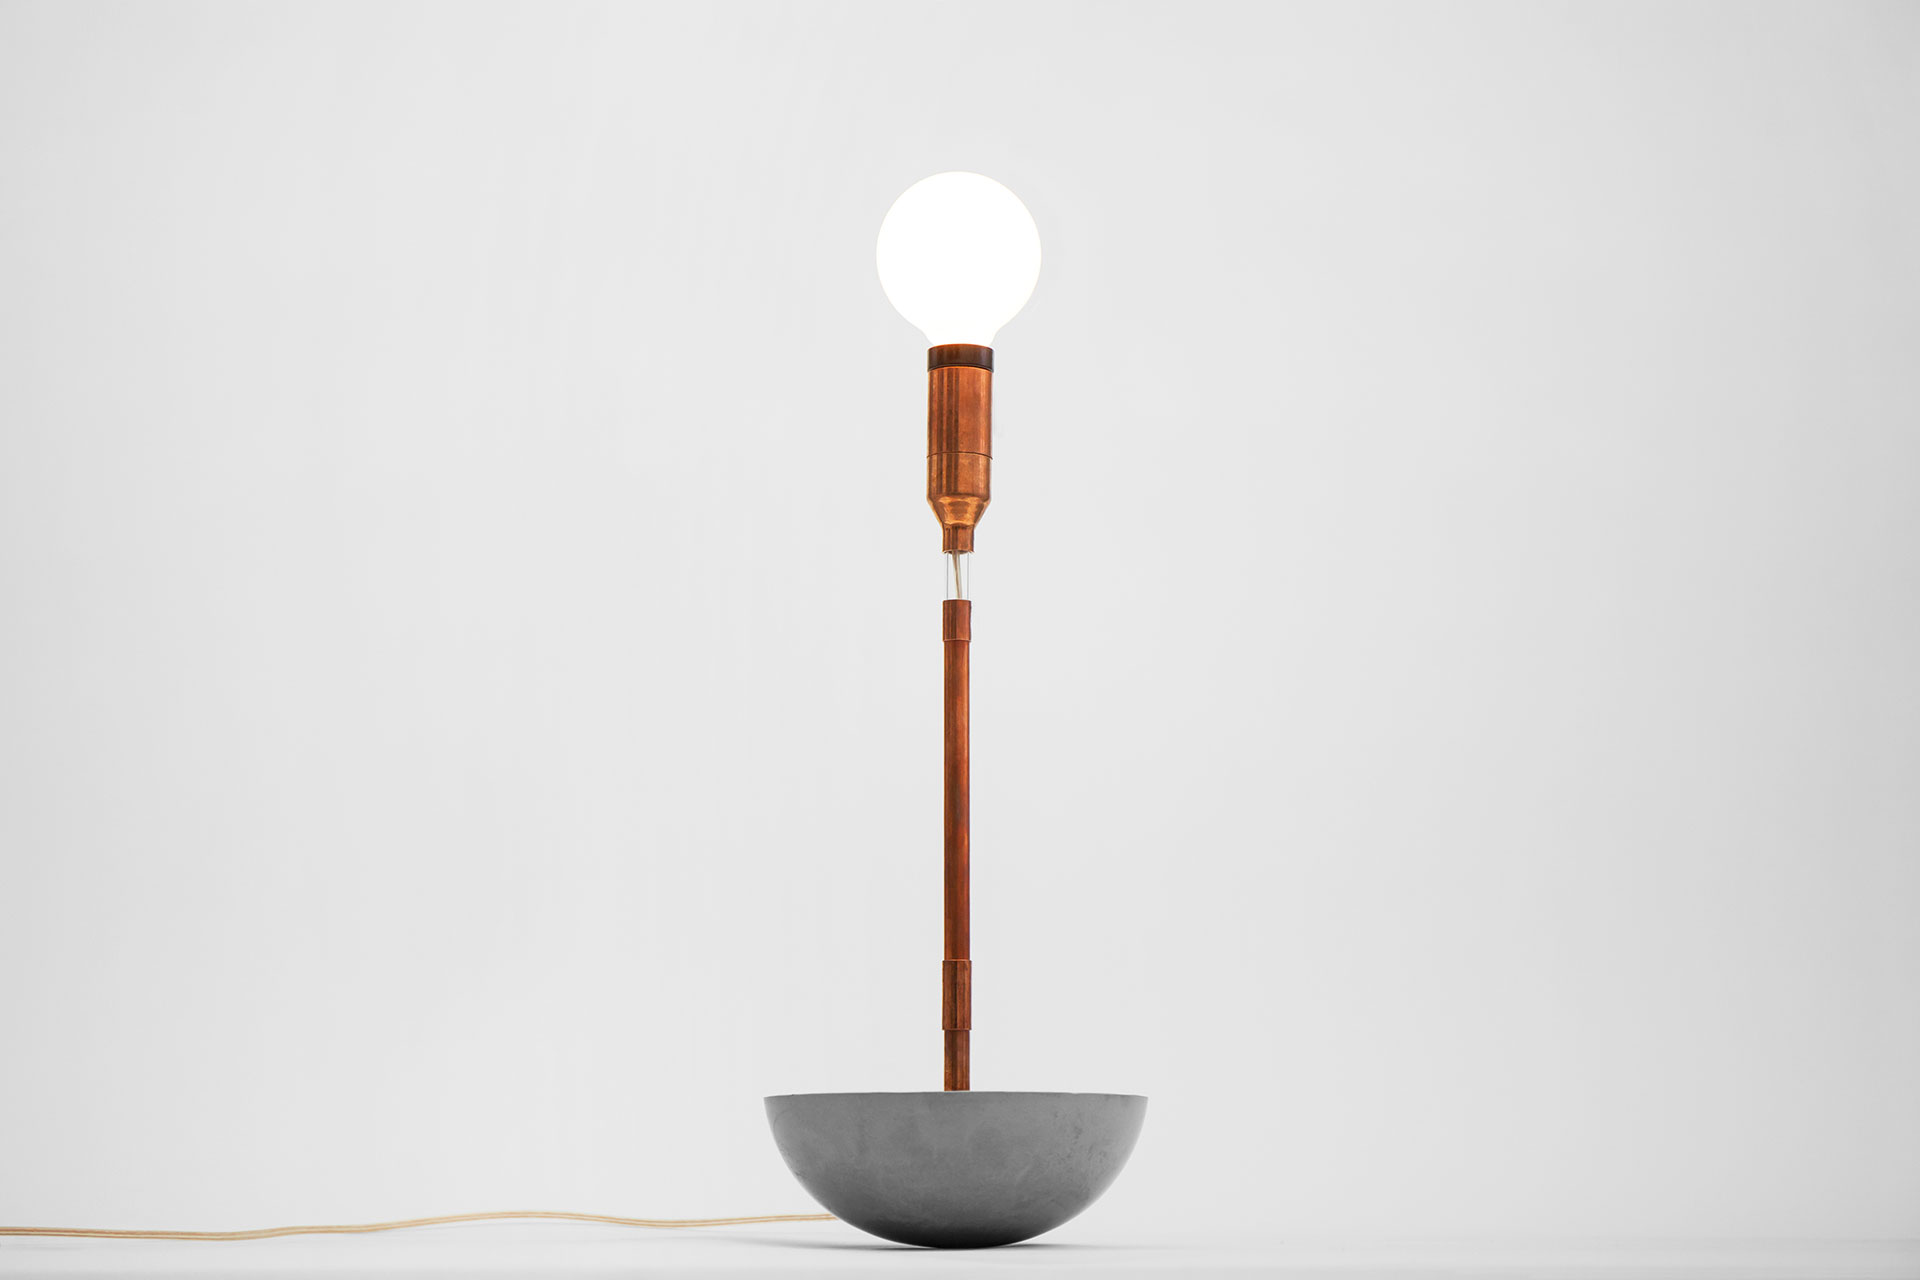 Copper pipe table lamp with hemisphere concrete base and magic touch dimmer